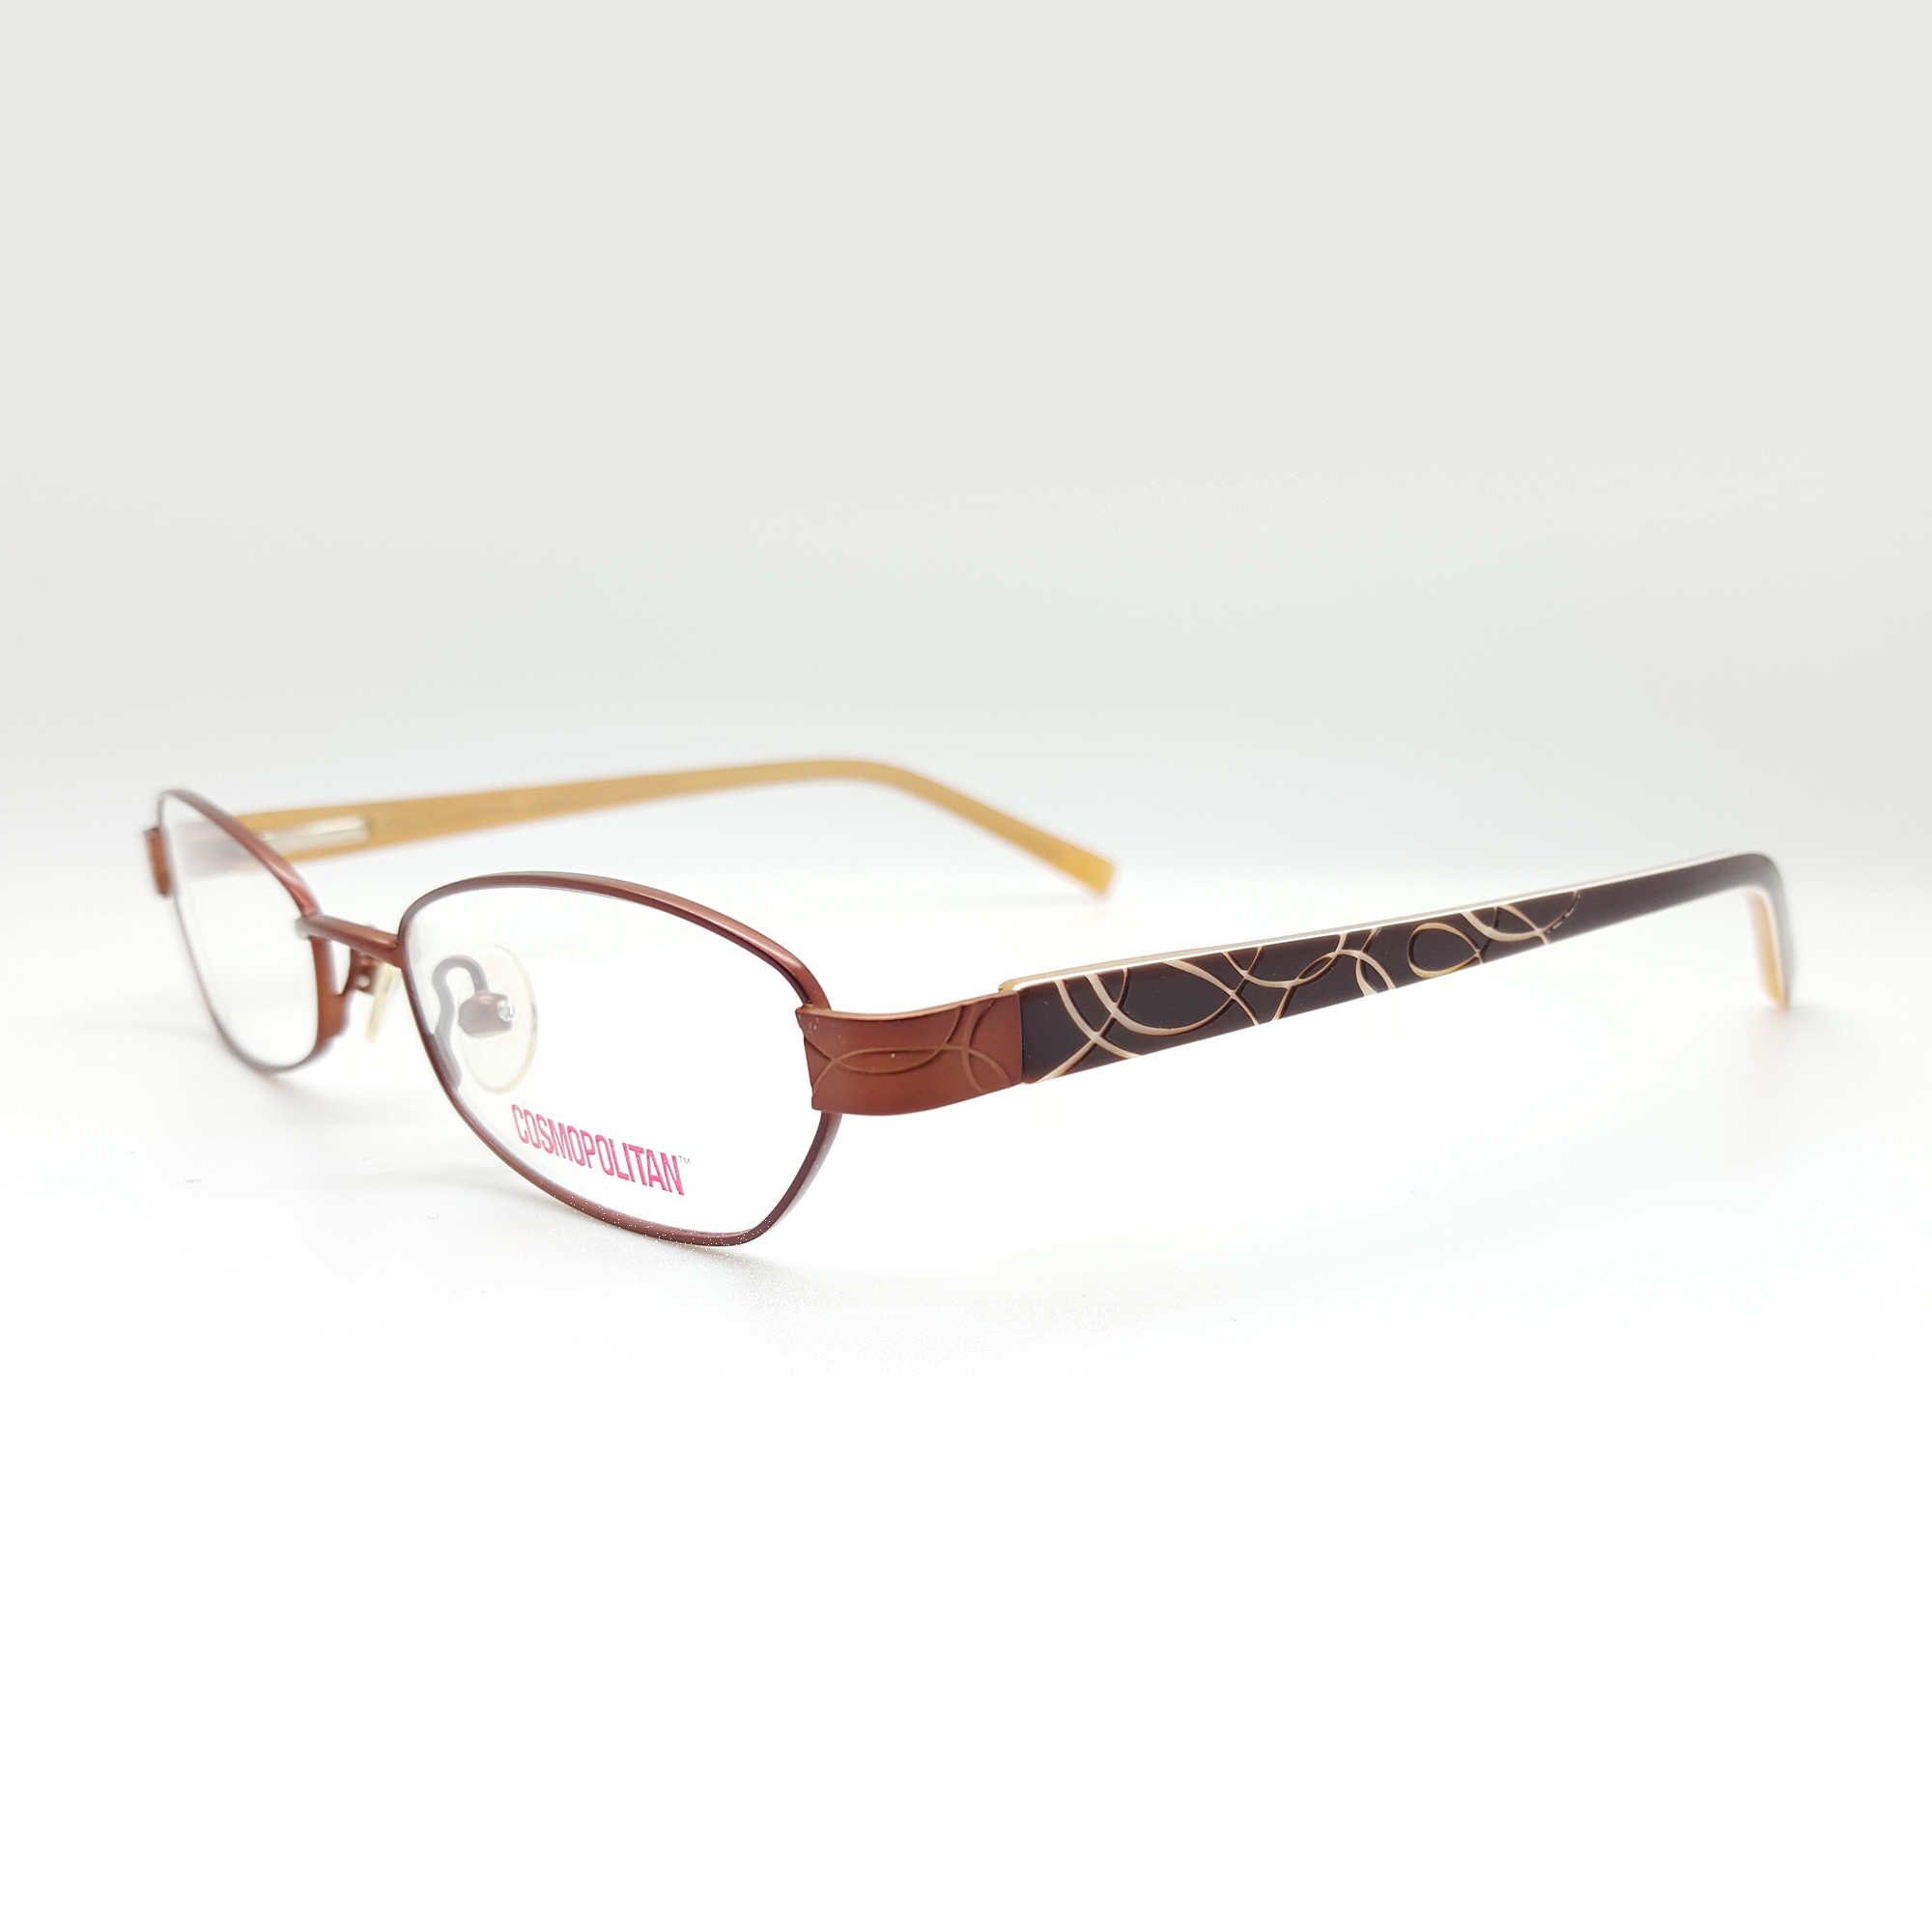 Fashion eyeglasses non prescription 39